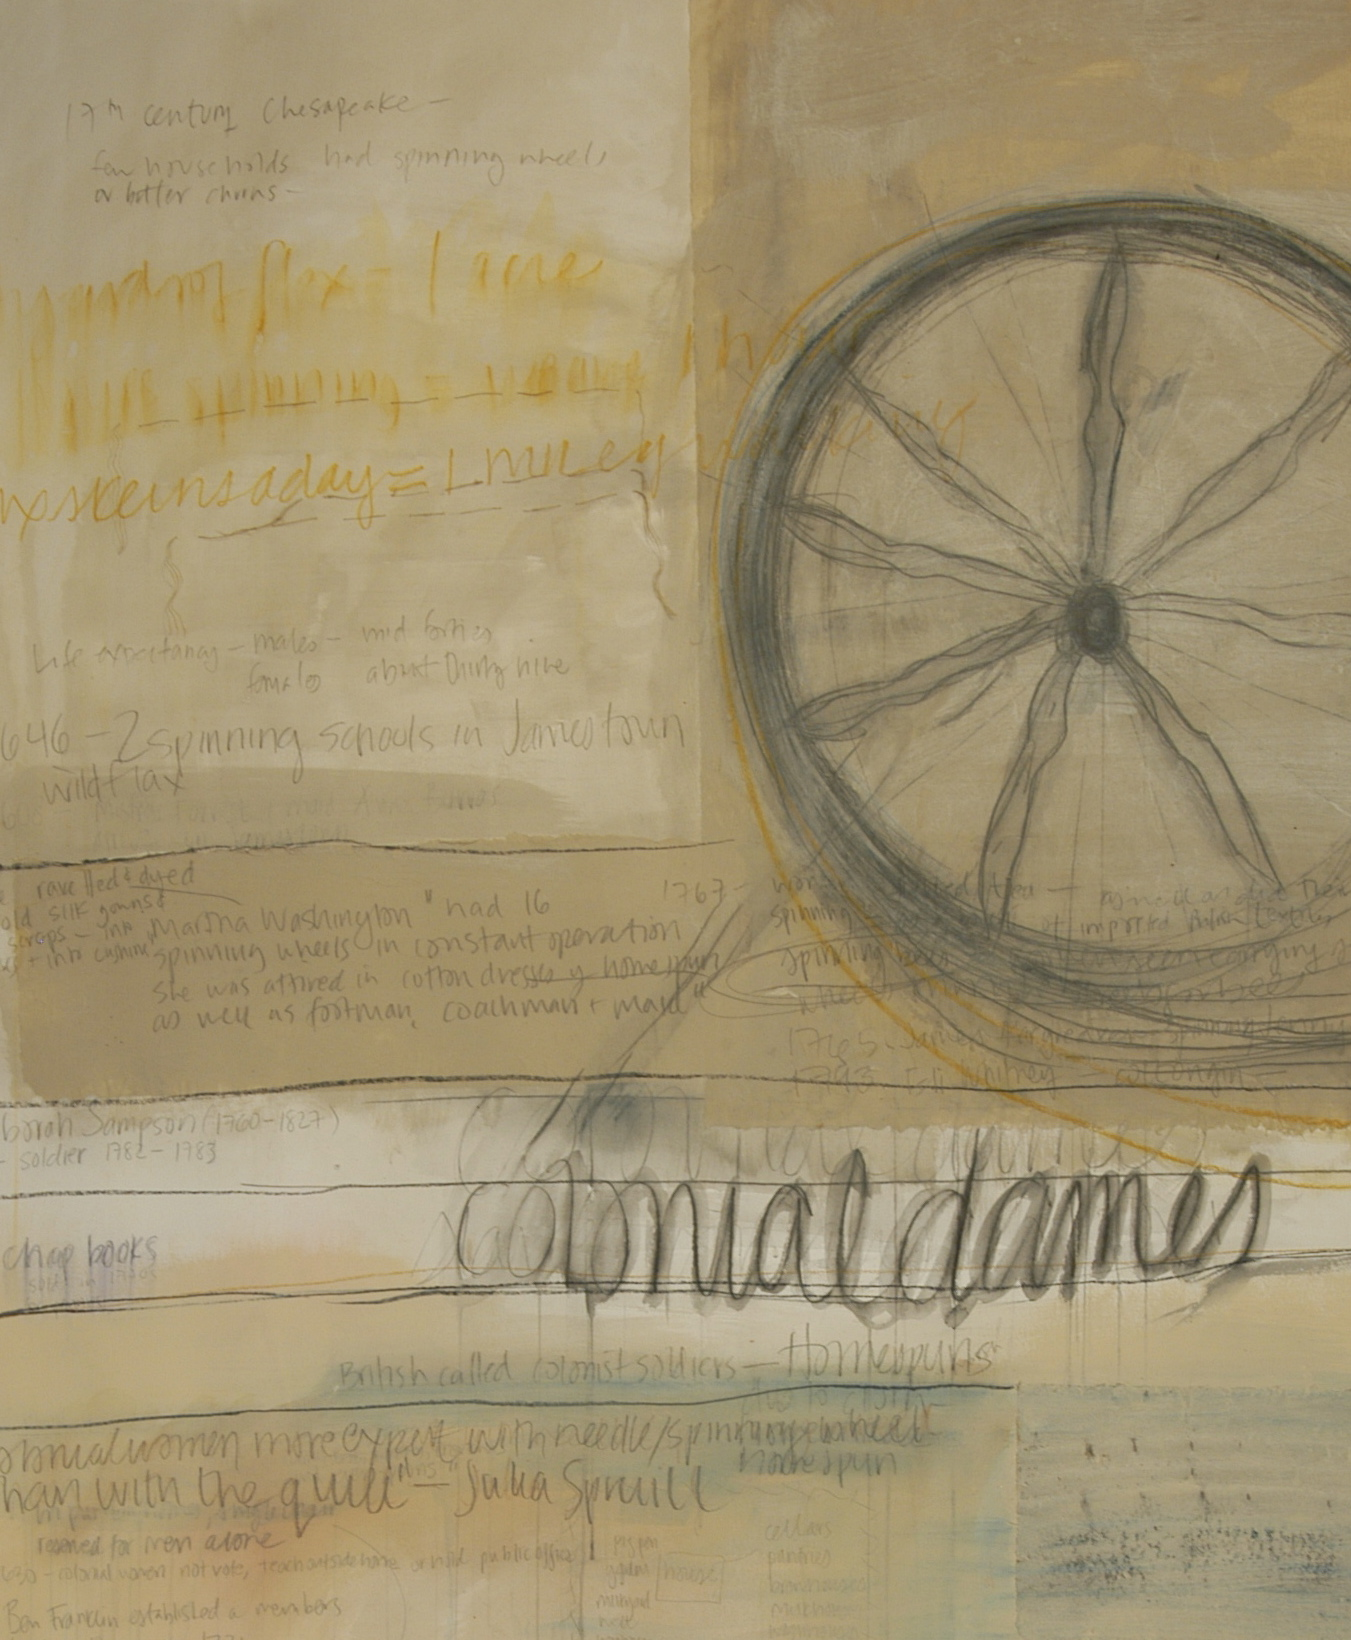 Brece Honeycutt, detail from 'colonial dames,' mixed media on paper, 2006